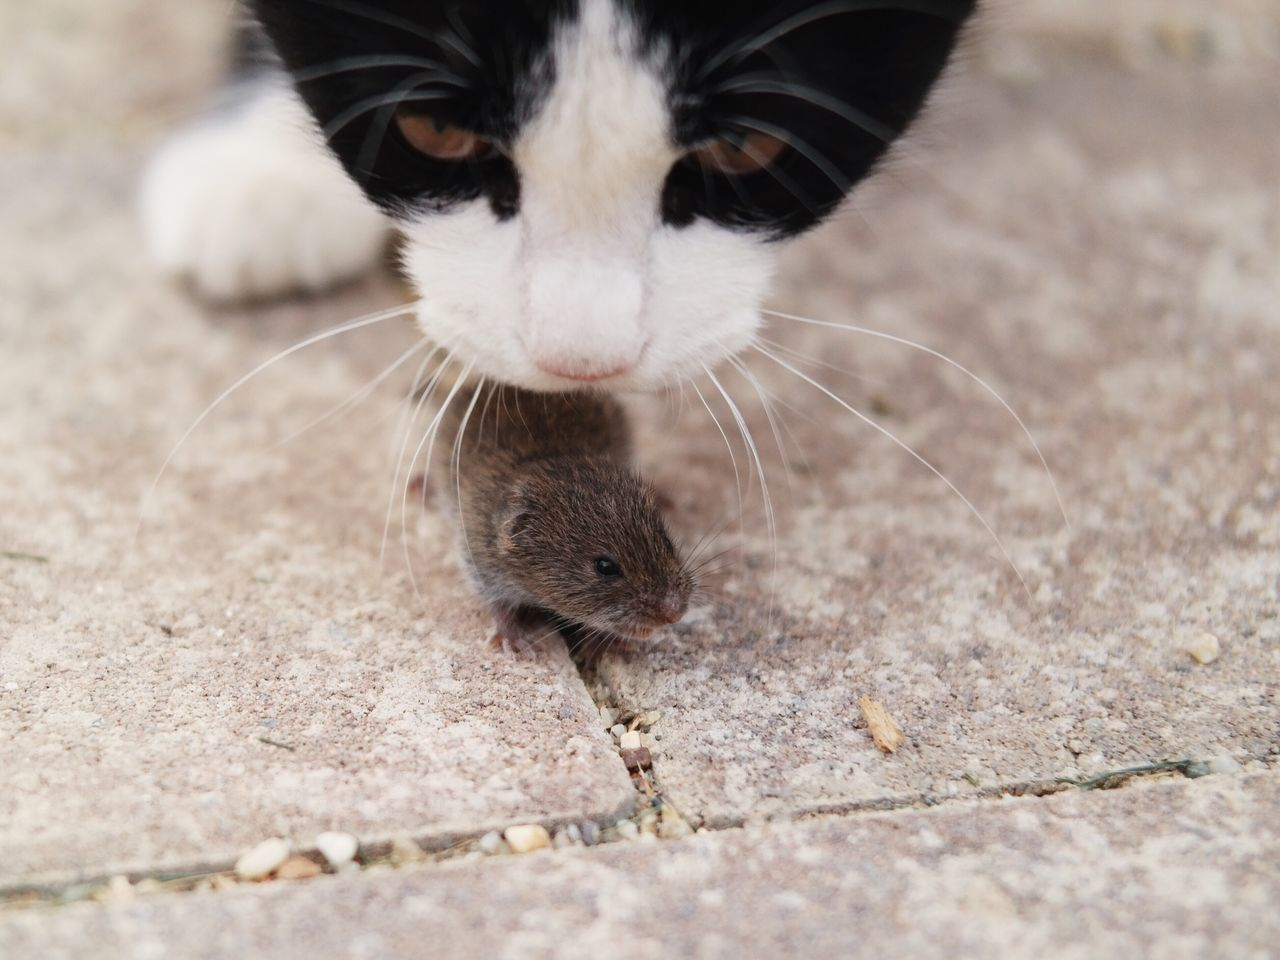 Close-Up Of Cat Smelling Mouse On Footpath